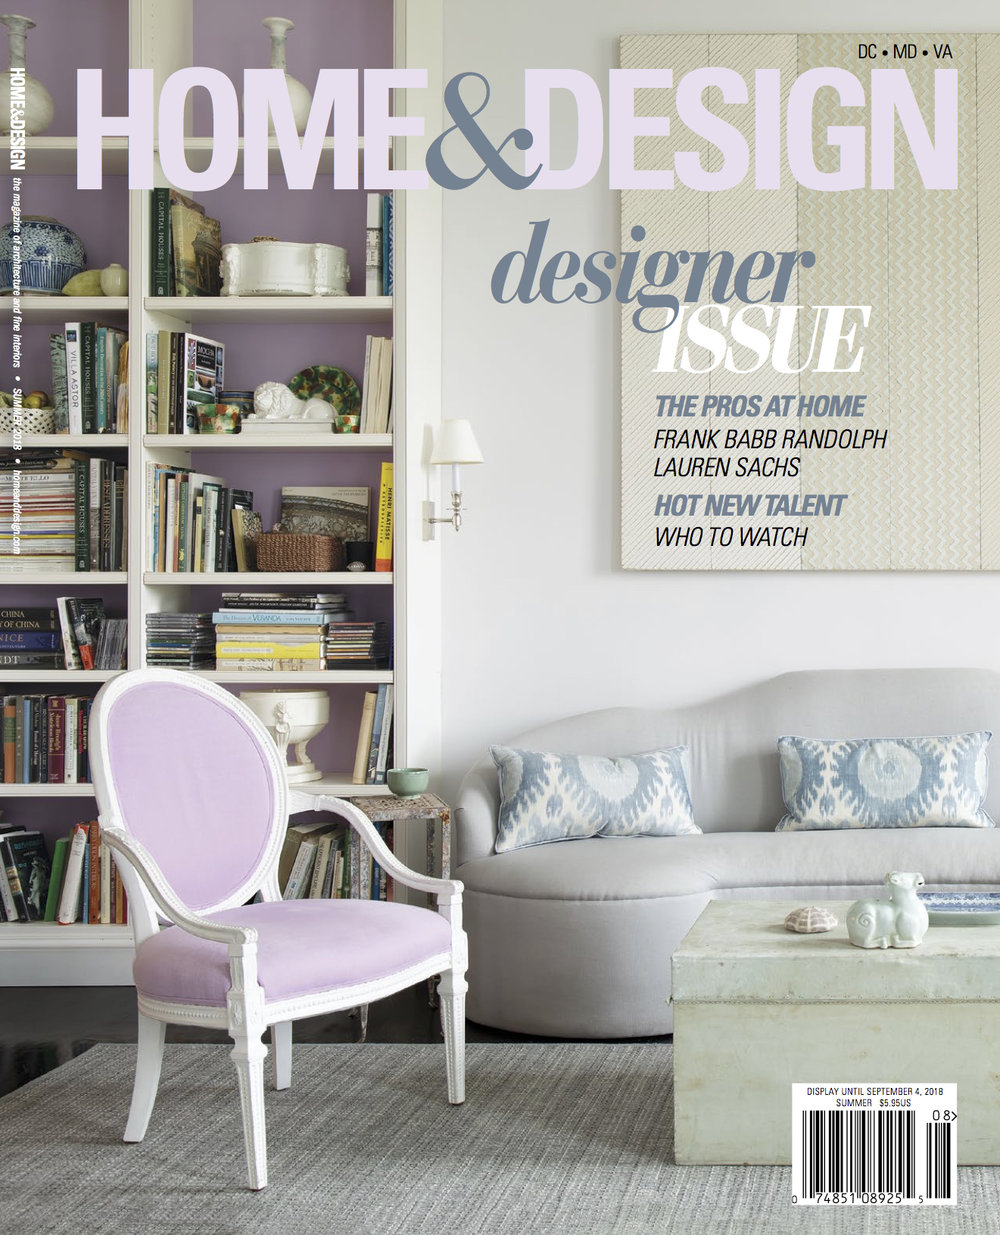 HOME & DESIGN, JULY/AUGUST 2018